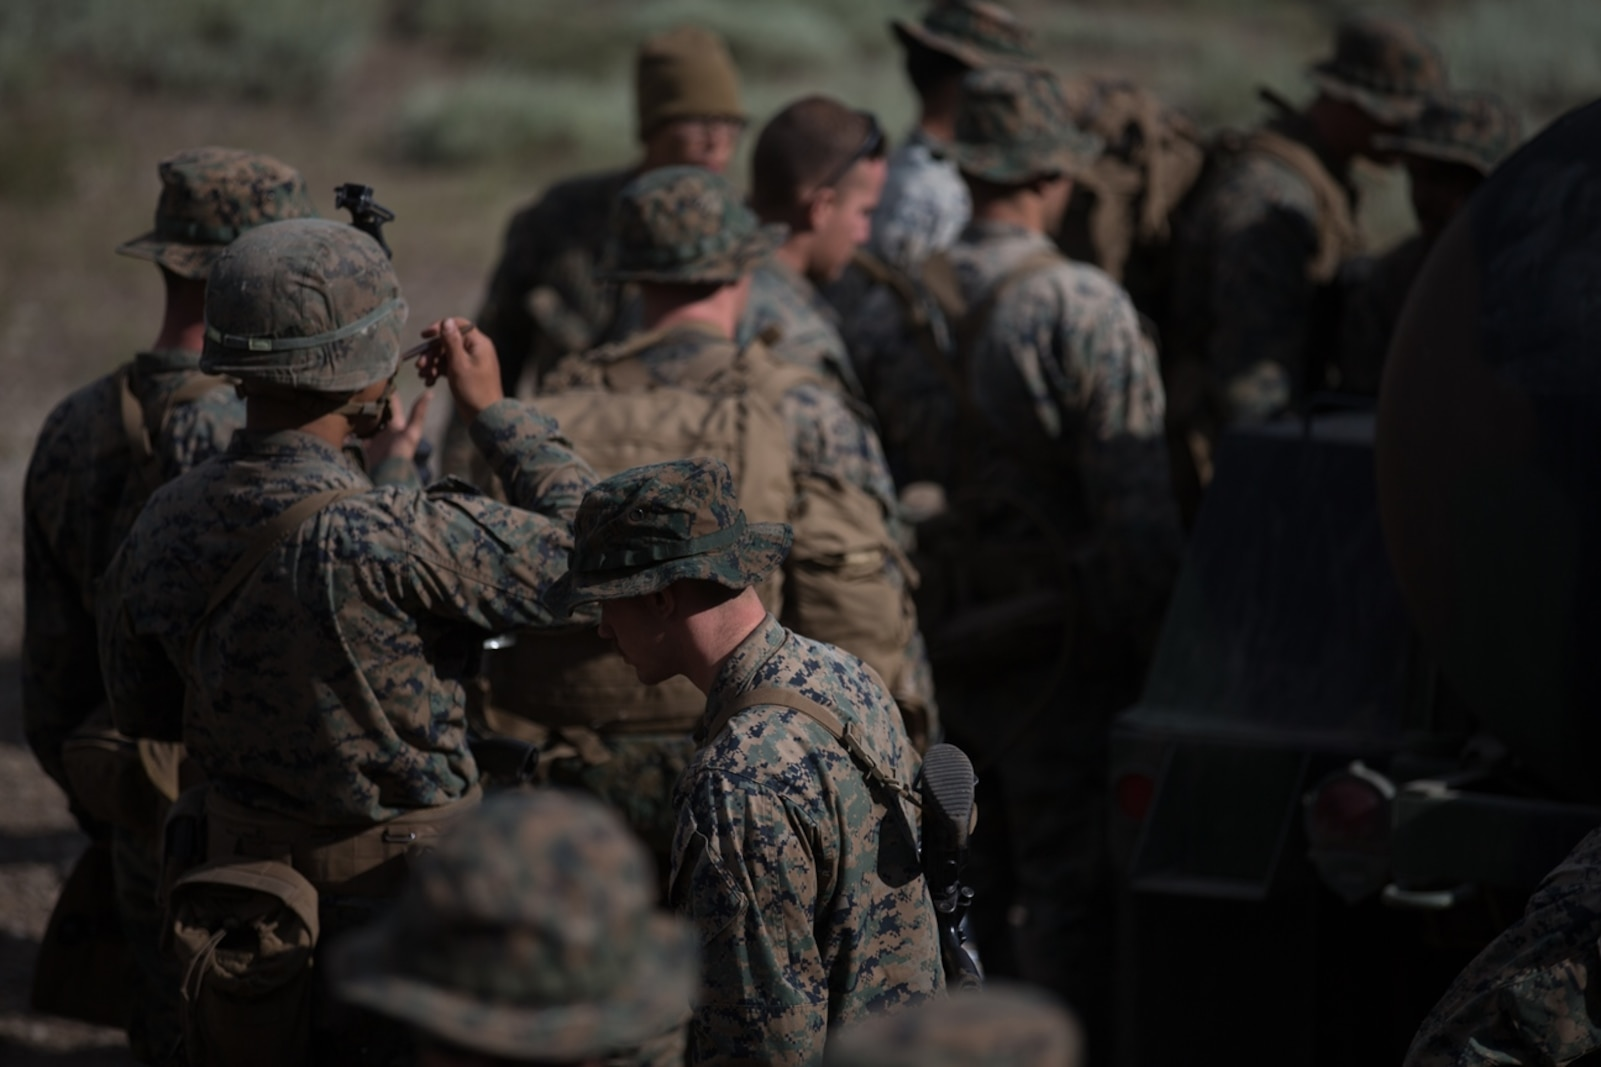 U.S. Marines with 2d Battalion, 8th Marine Regiment, 2d Marine Division receive water from the water trailer during Mountain Training Exercise 4-17 at Mountain Warfare Training Center, August 6, 2017. Marines with Combat Logistics Battalion 5, Combat Logistics Regiment 1, 1st Marine Logistics Group, support 2d Battalion, 8th Marines logistically by tackling the technical aspects of mountainous and cold weather operations by providing them chow, water, and fuel. The water trailer can hold up to 600 gallons of water and serves as the primary source of water to Marines in the field. (U.S. Marine Corps photo by Lance Cpl. Timothy Shoemaker)